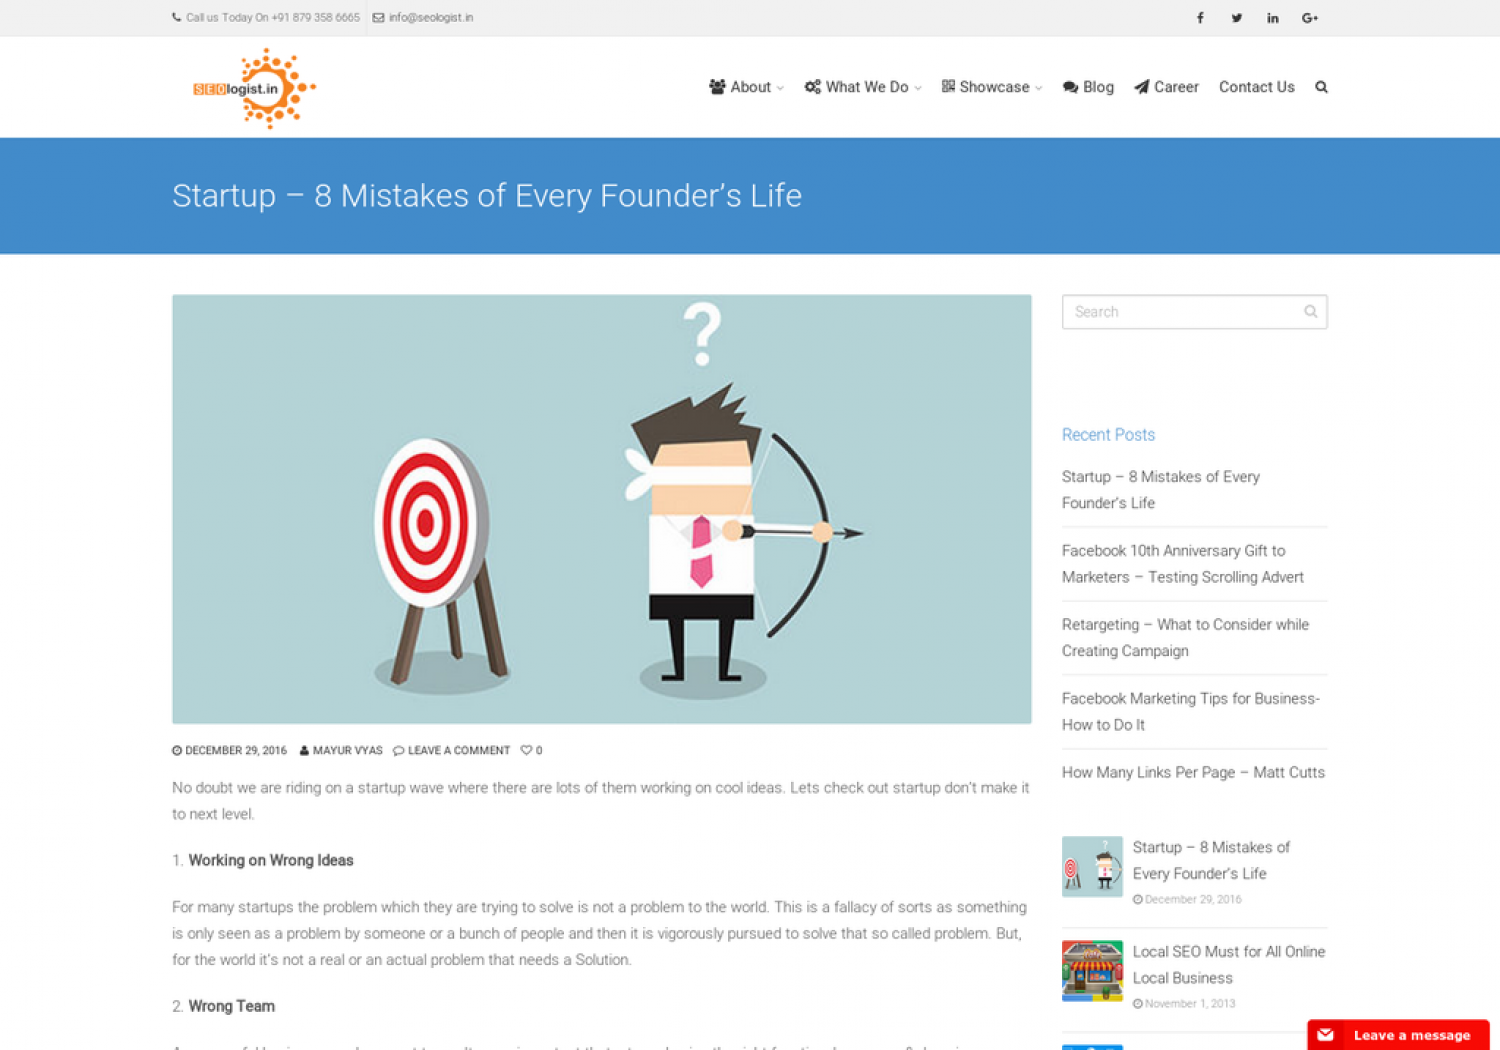 Startup – 8 Mistakes of Every Founder's Life Infographic